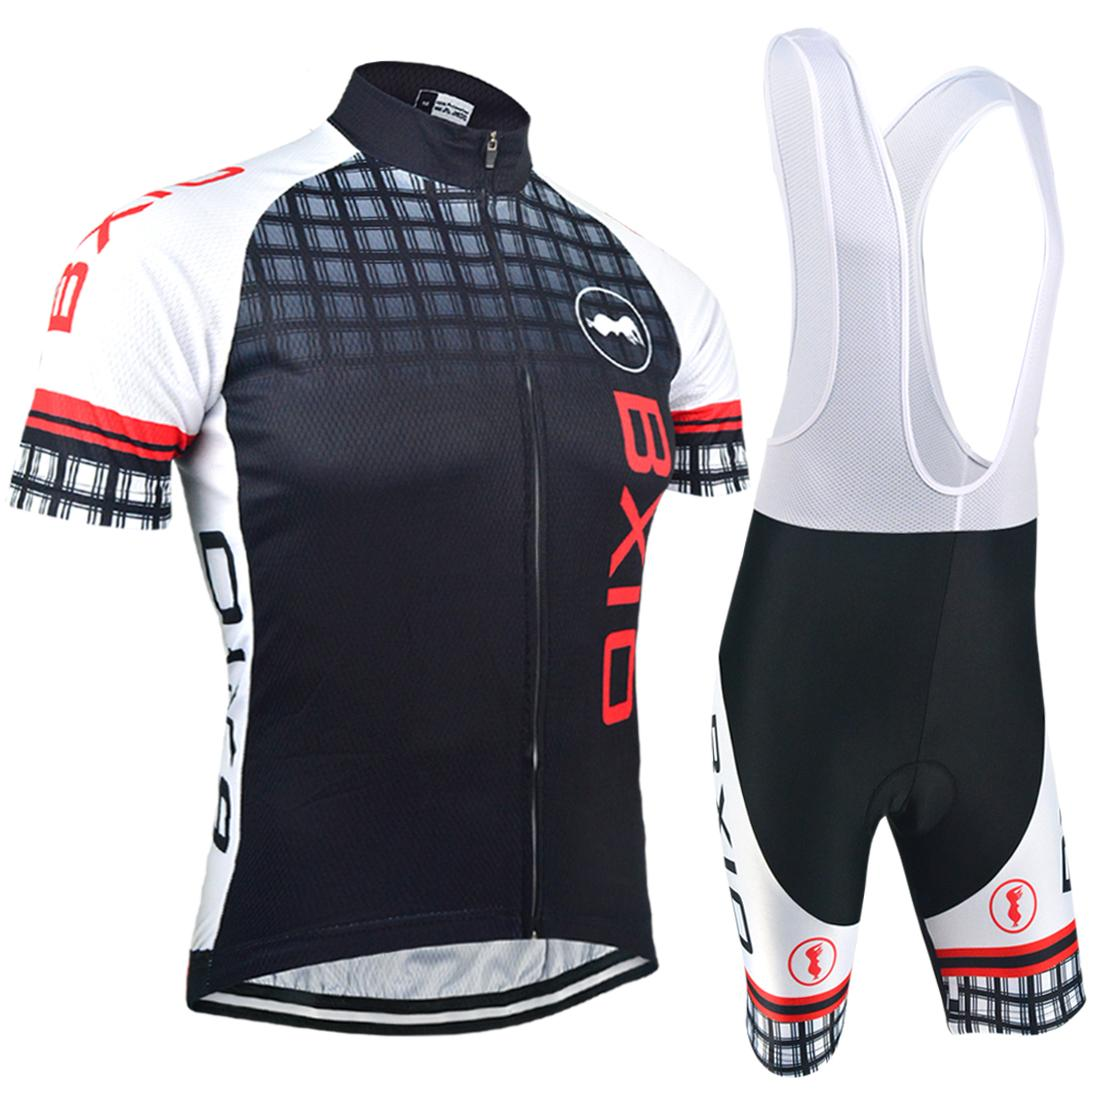 BXIO Brand Promotion Item Men Cycling Jerseys Short Sleeve Bike Jerseys  Quick Dry Zipper Jersey And Bib Pants Set Sale Ropa Ciclismo BX 012 Cycling  Caps Bib ... 0e3f38a26